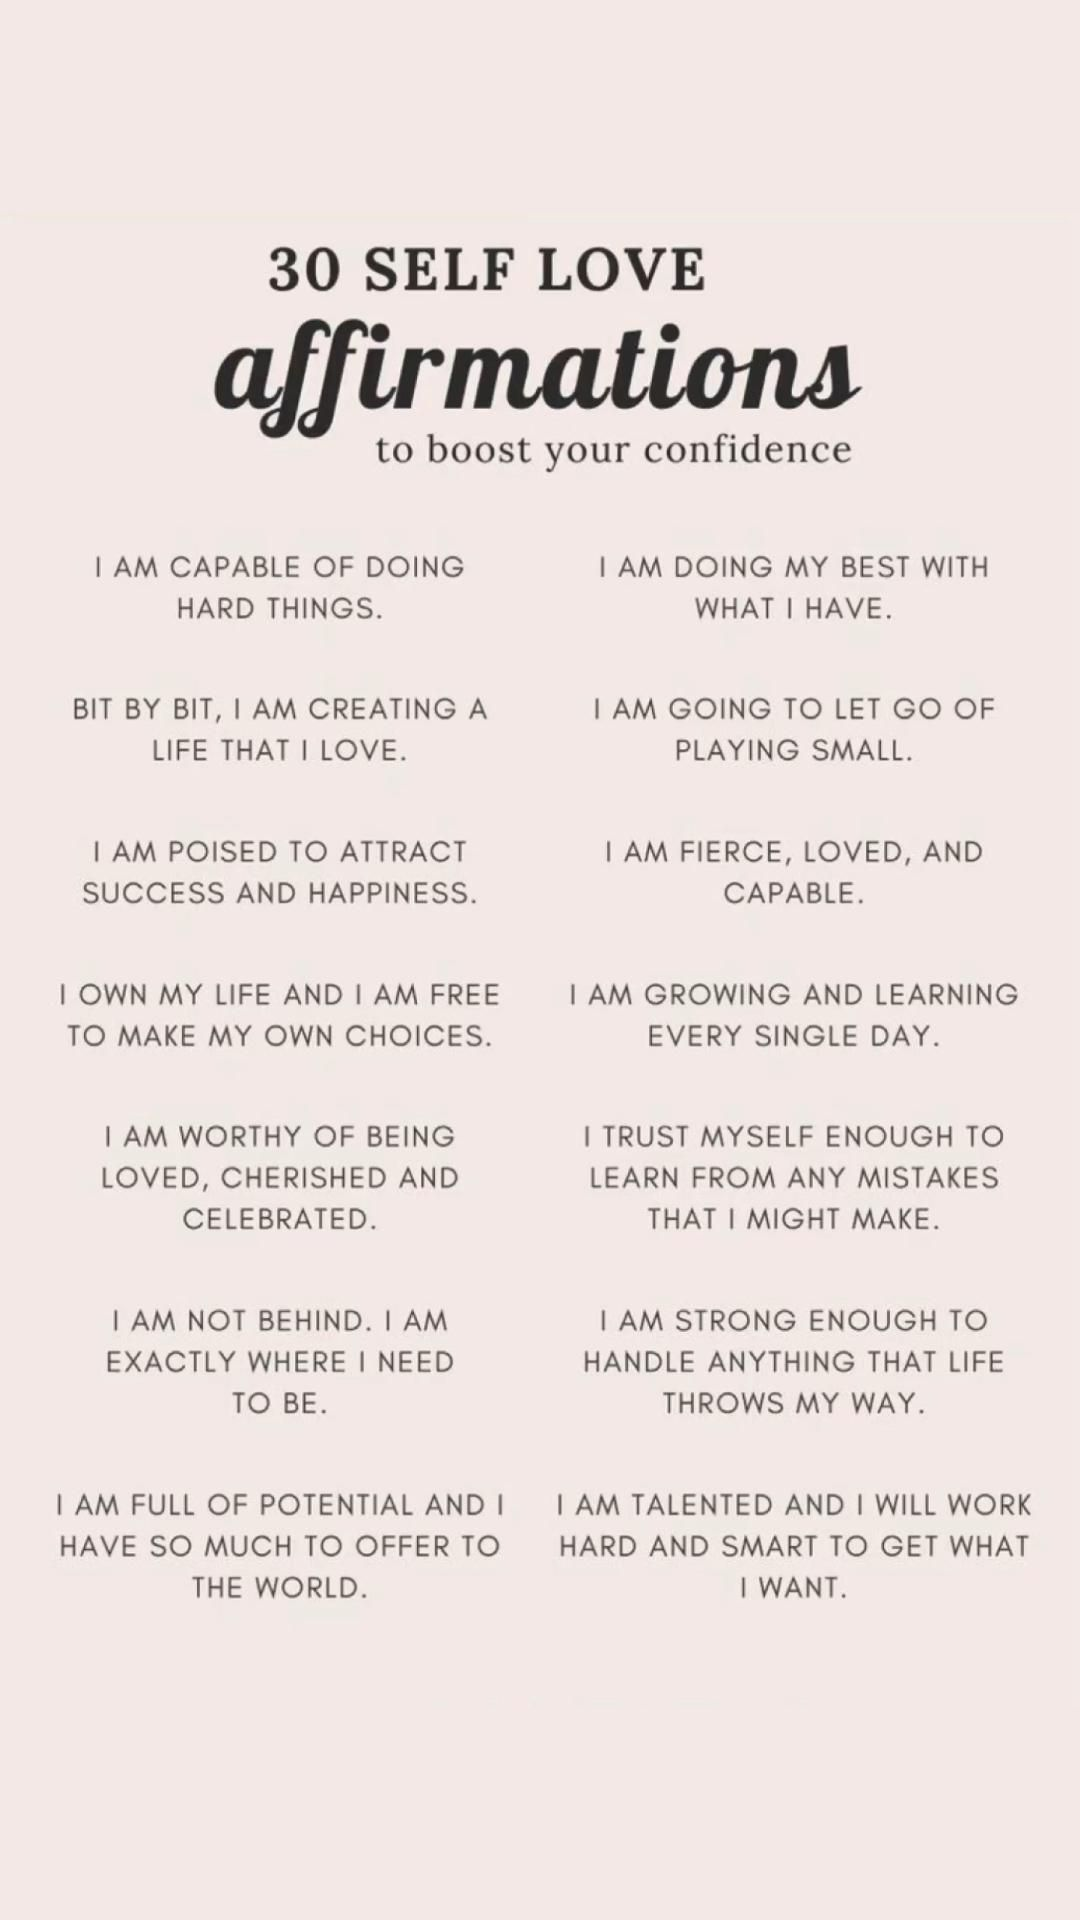 Affirmations for Self Love // Follow for more affirmations, mental health & asmr ❤️